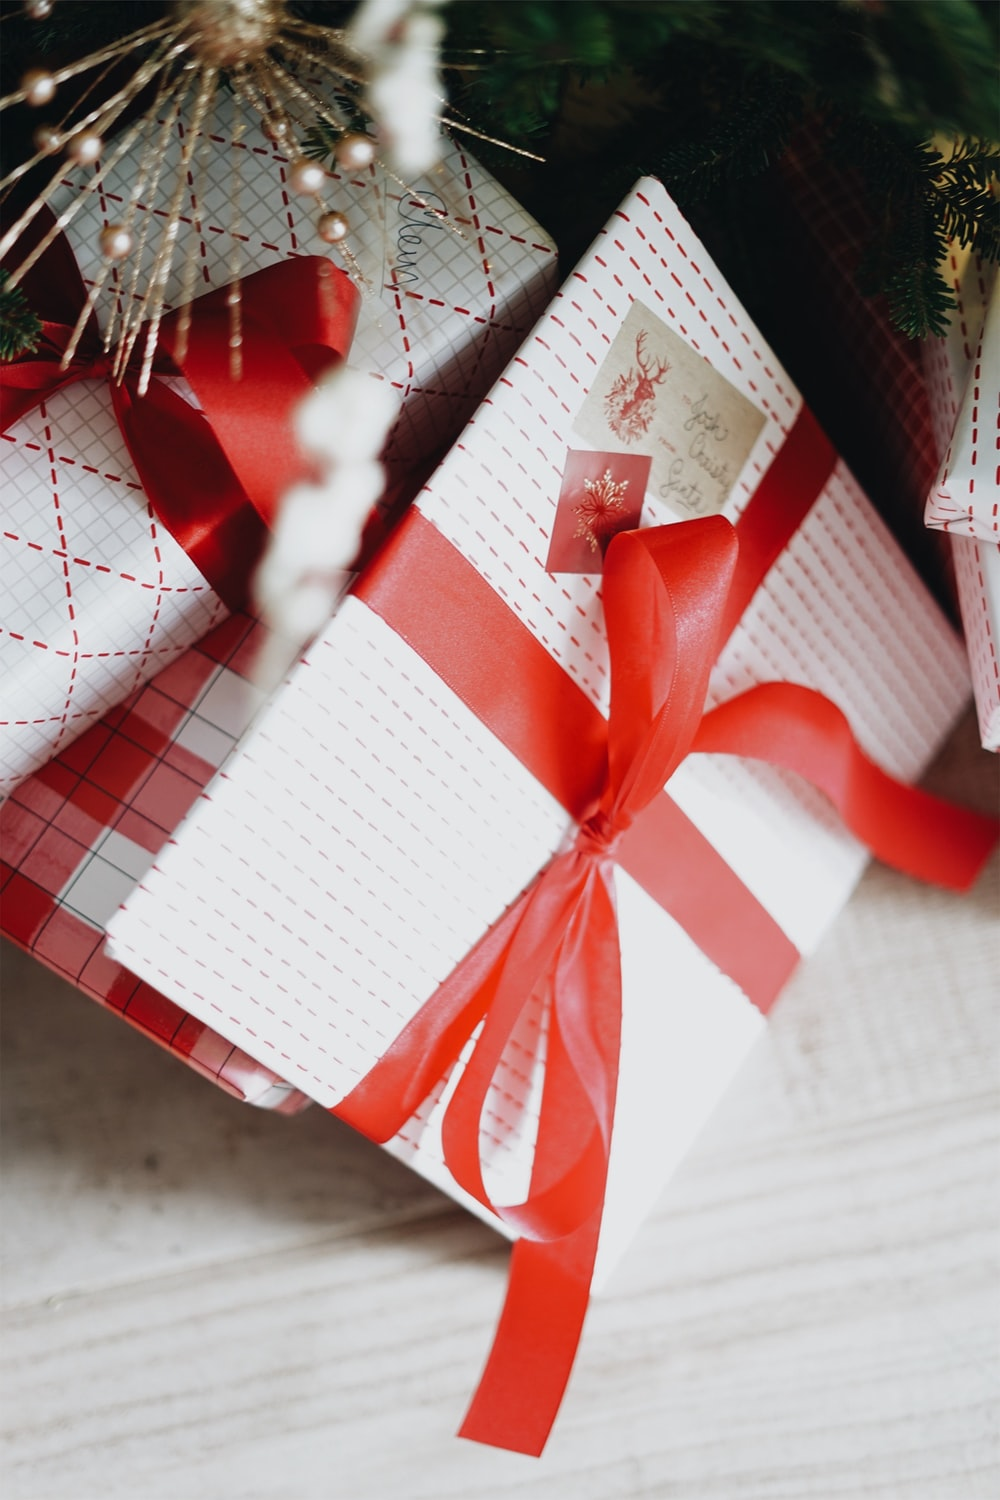 selective focus photography of white and red gift boxes